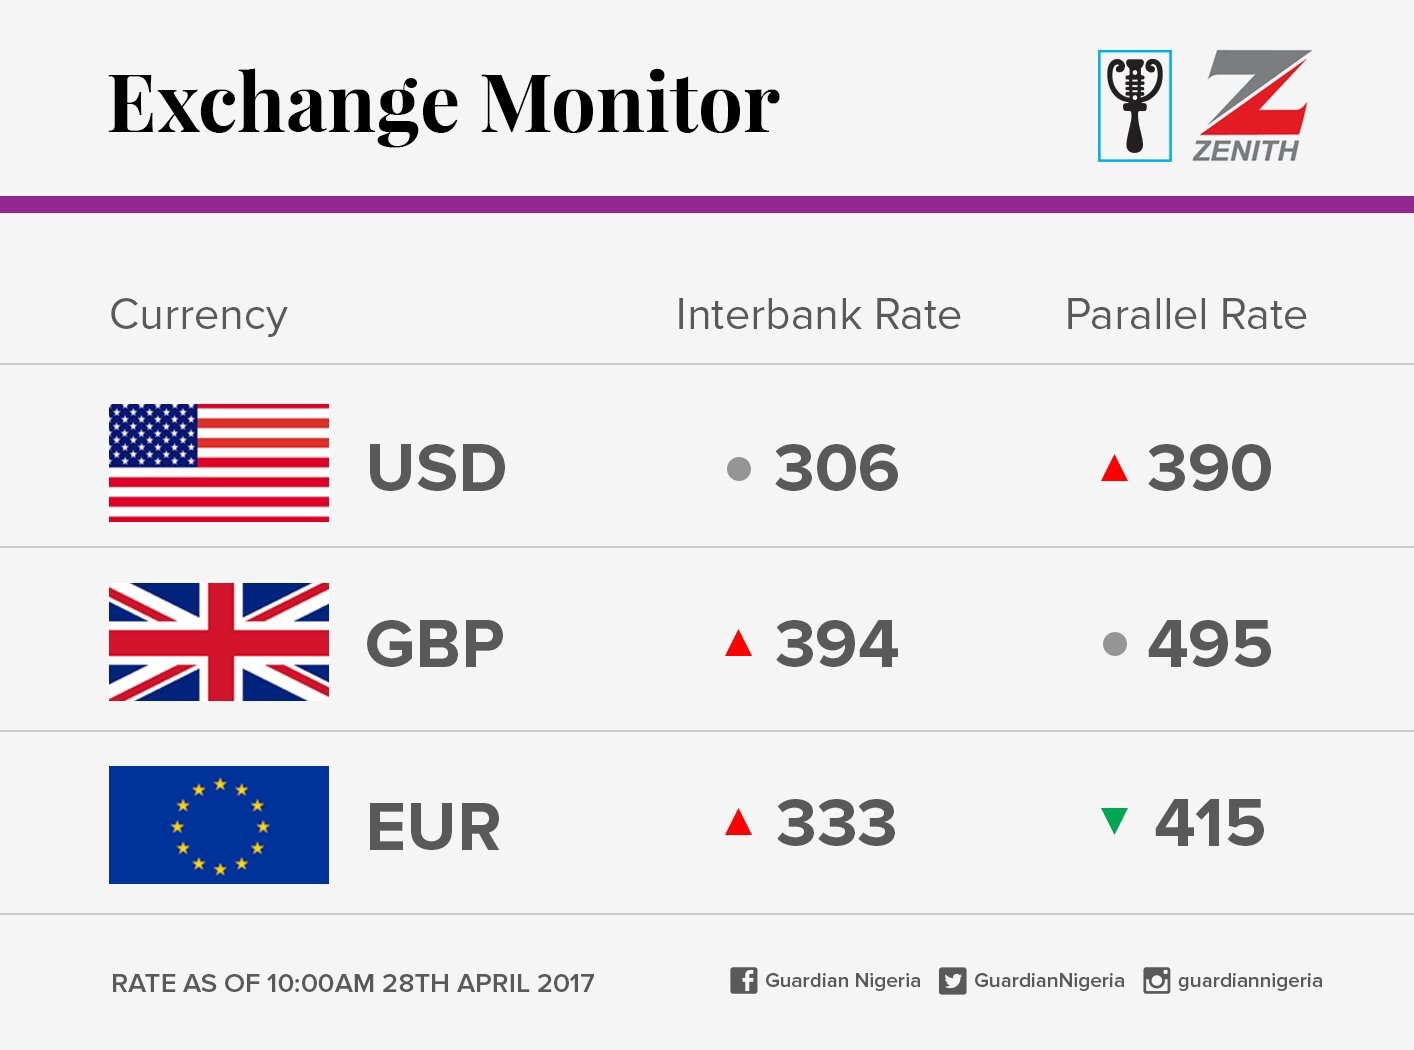 Exchange Rate For 28th April 2017